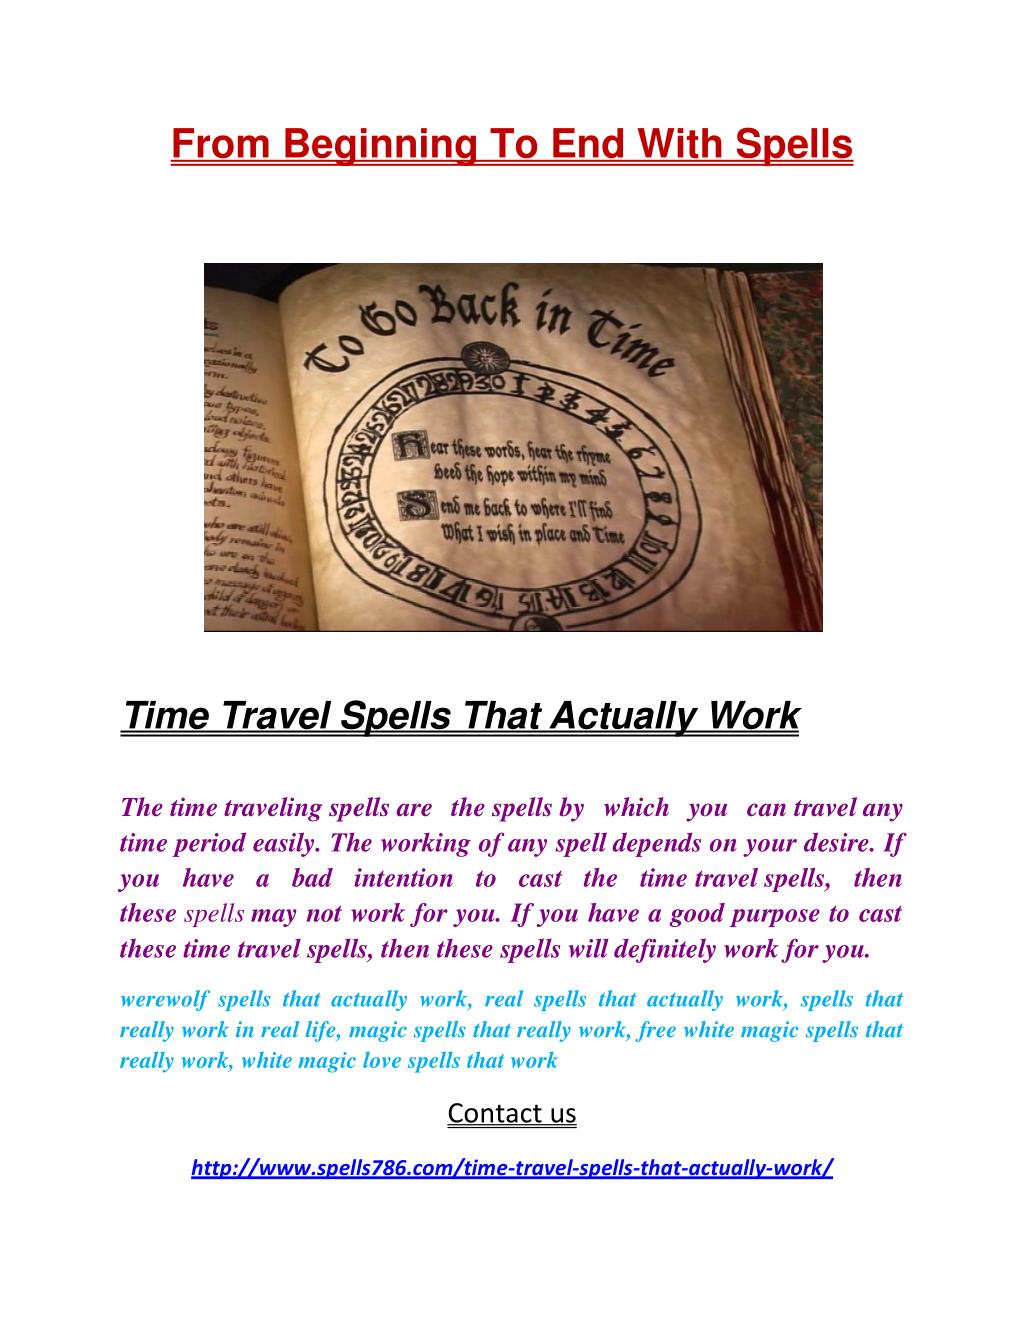 PPT - Time Travel Spells That Actually Work PowerPoint Presentation